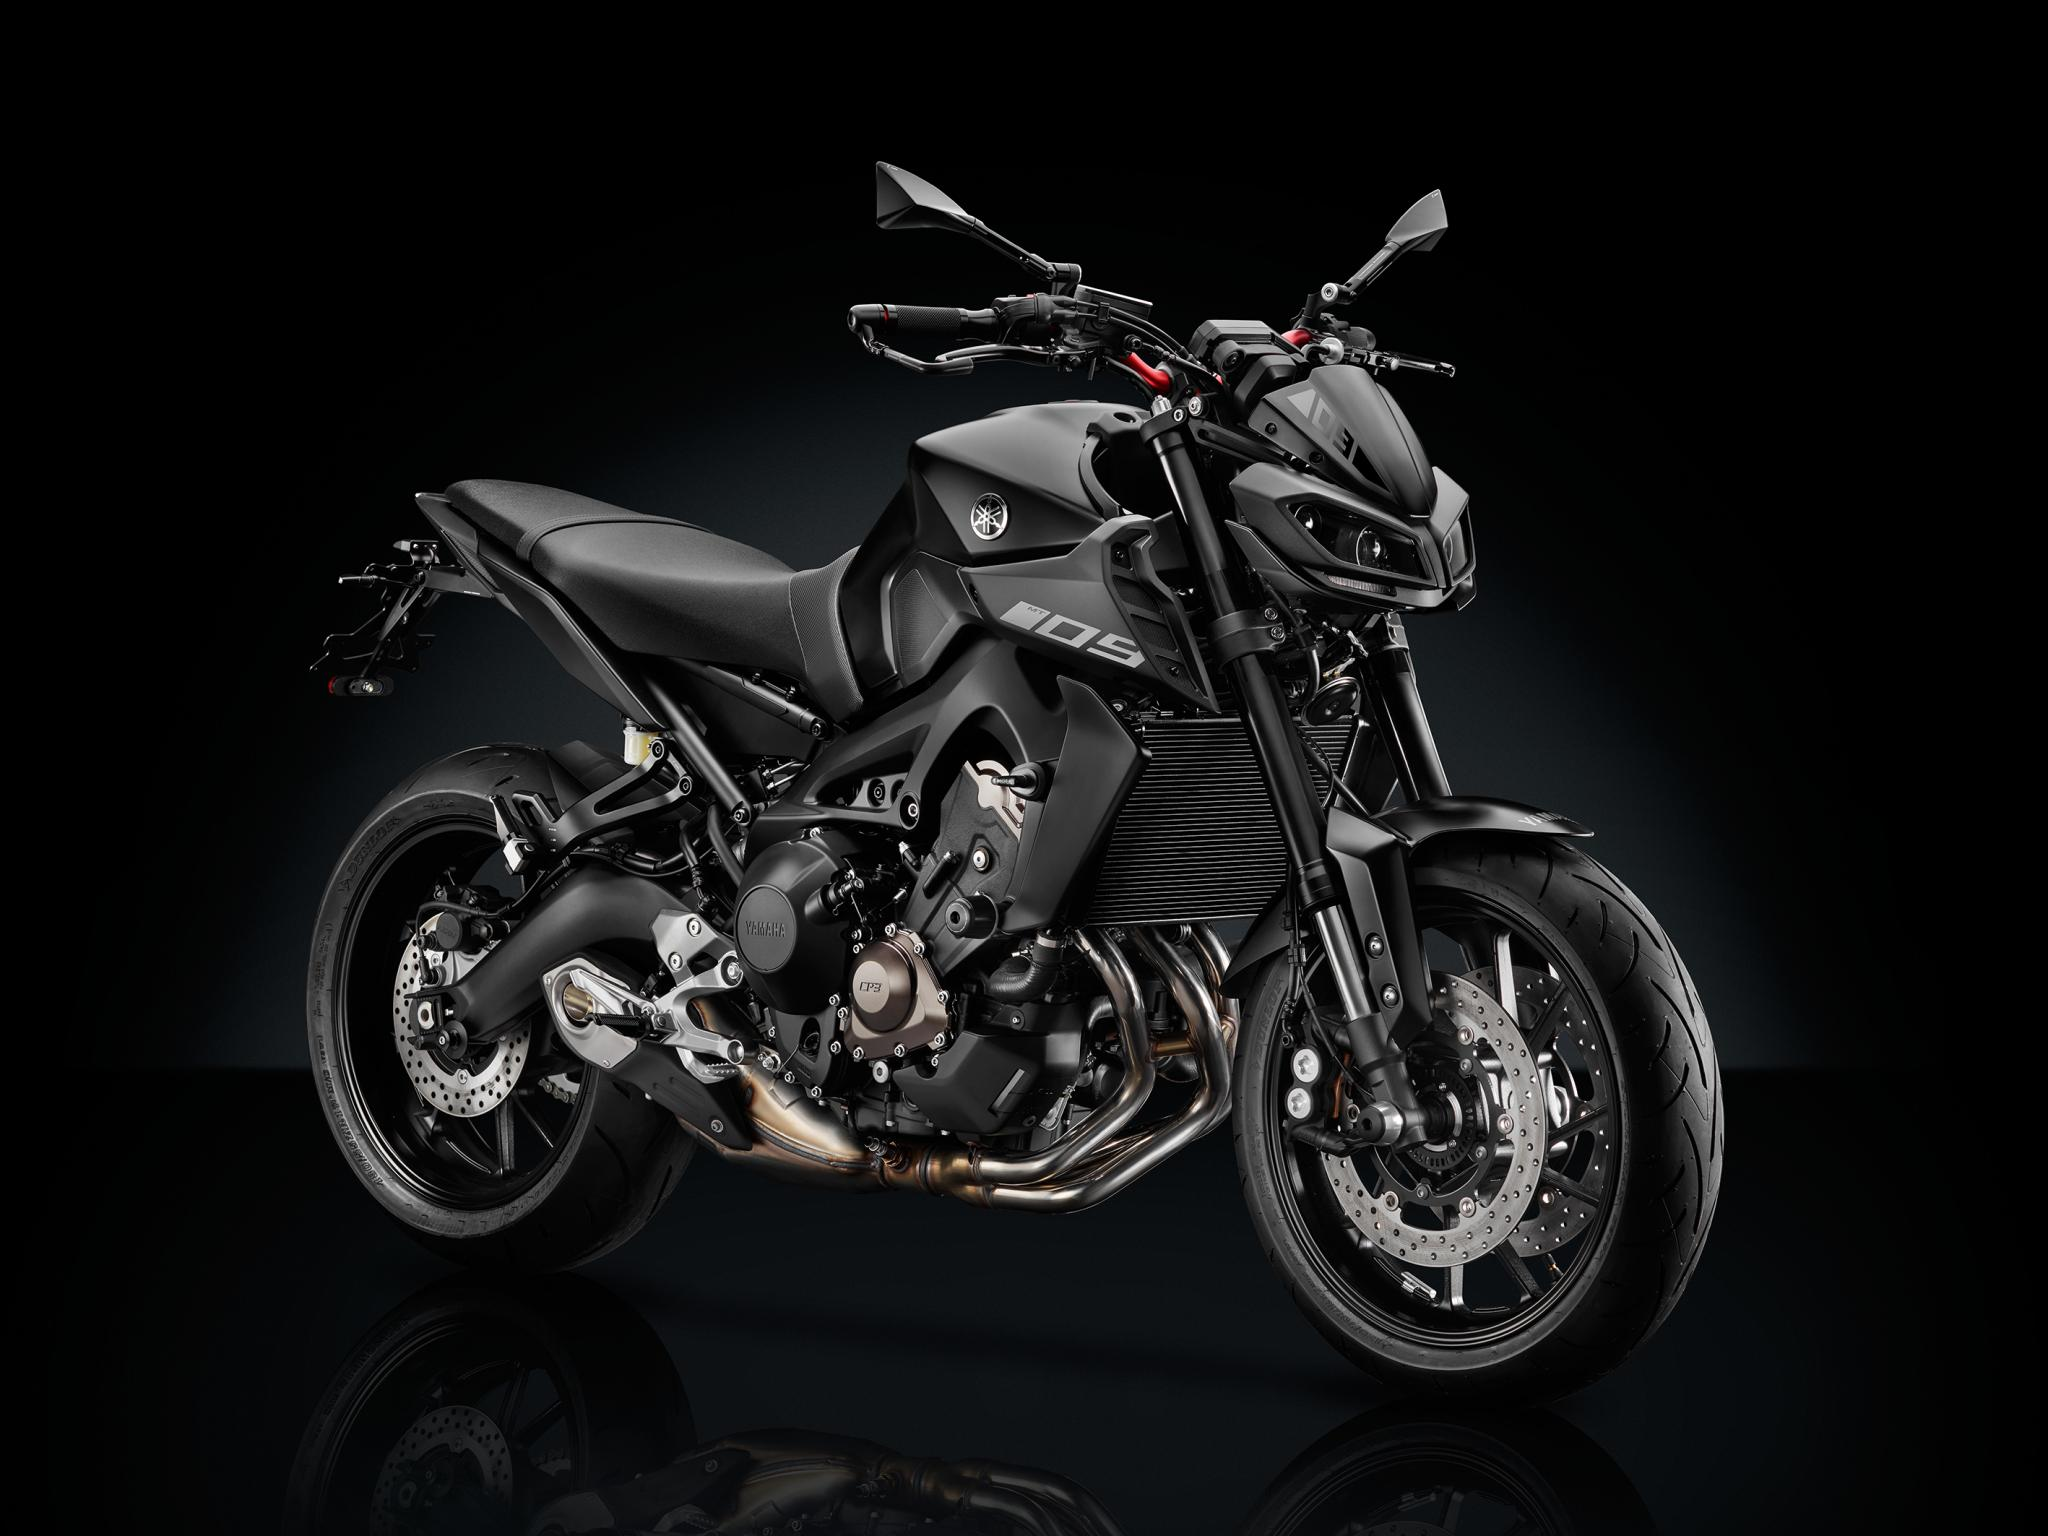 neue rizoma zubeh rlinie f r die yamaha mt 09. Black Bedroom Furniture Sets. Home Design Ideas